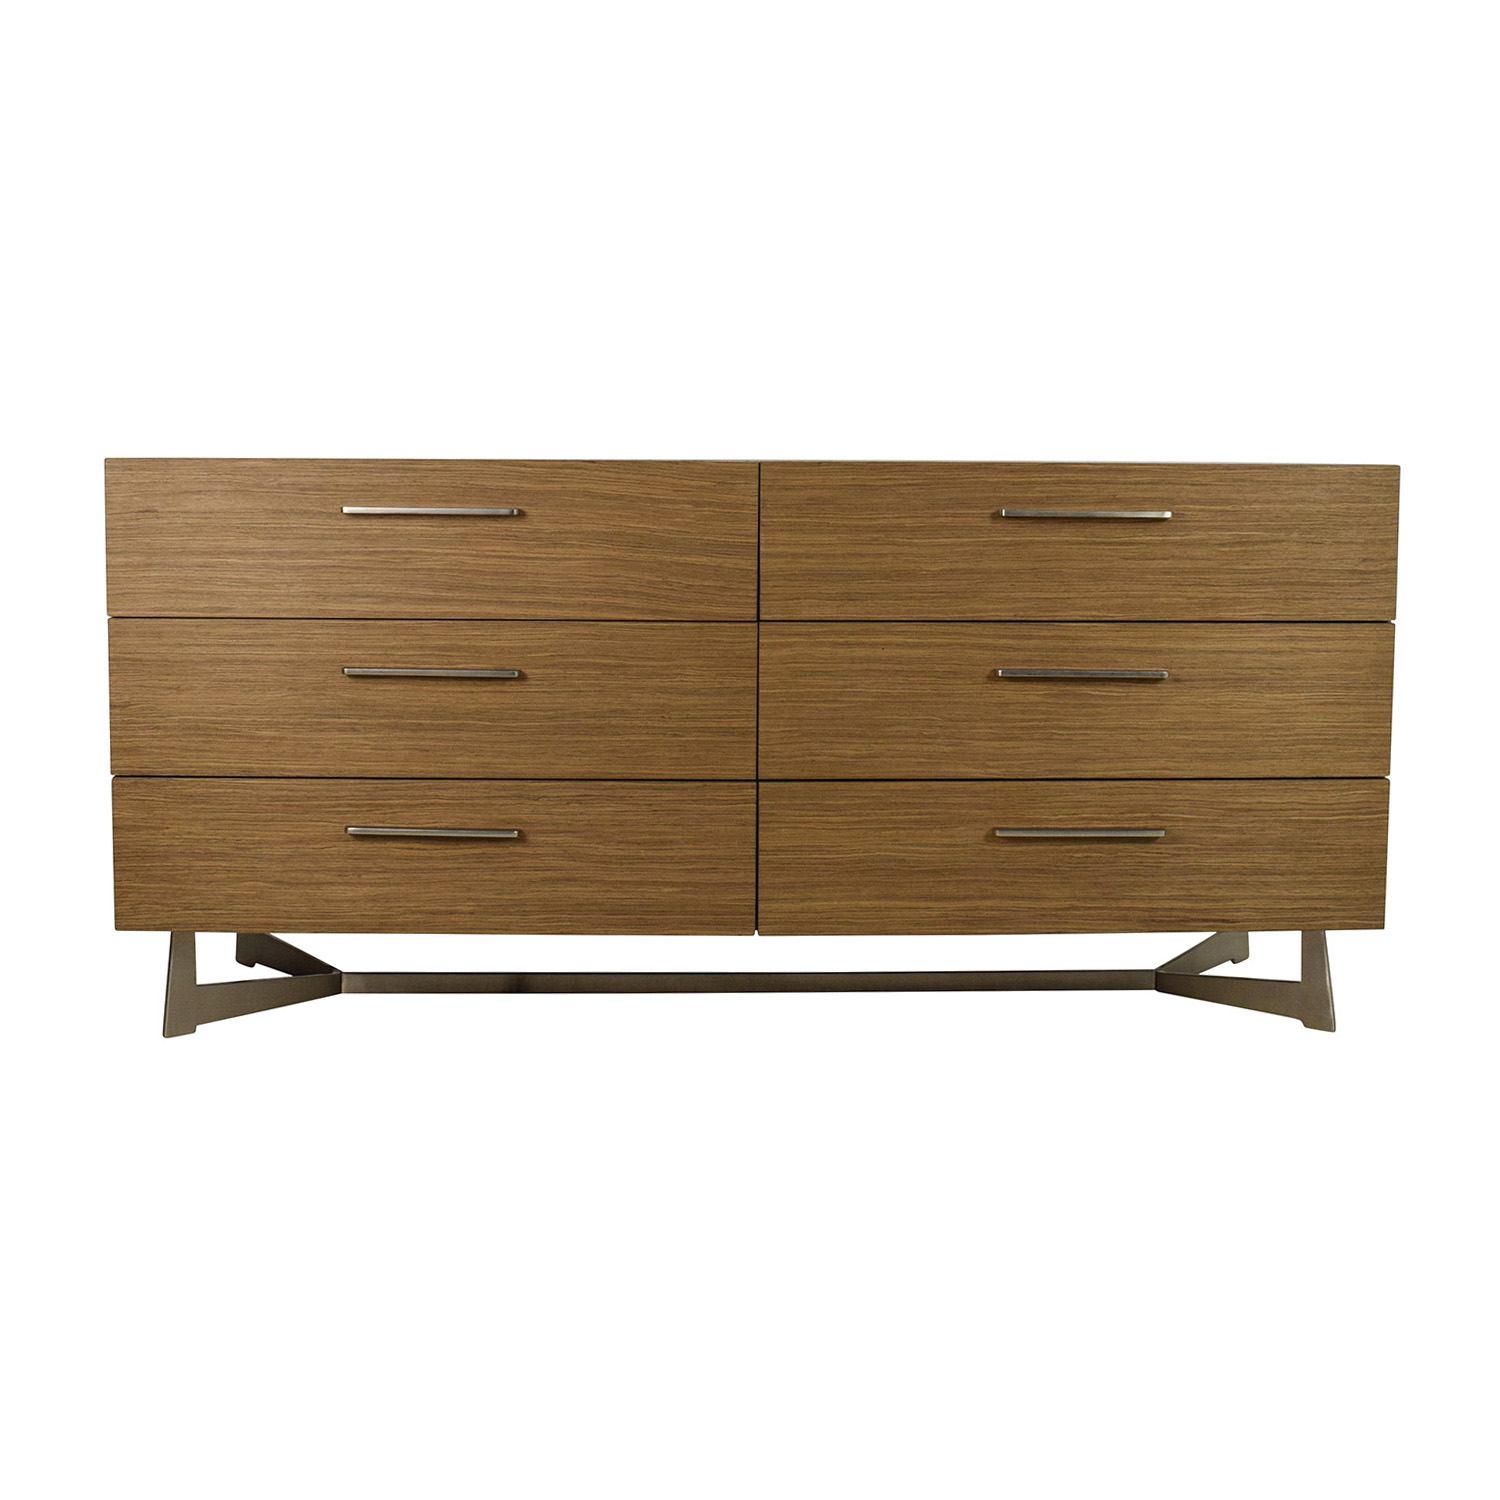 Modloft Modloft Broome Walnut and Concrete Dresser discount